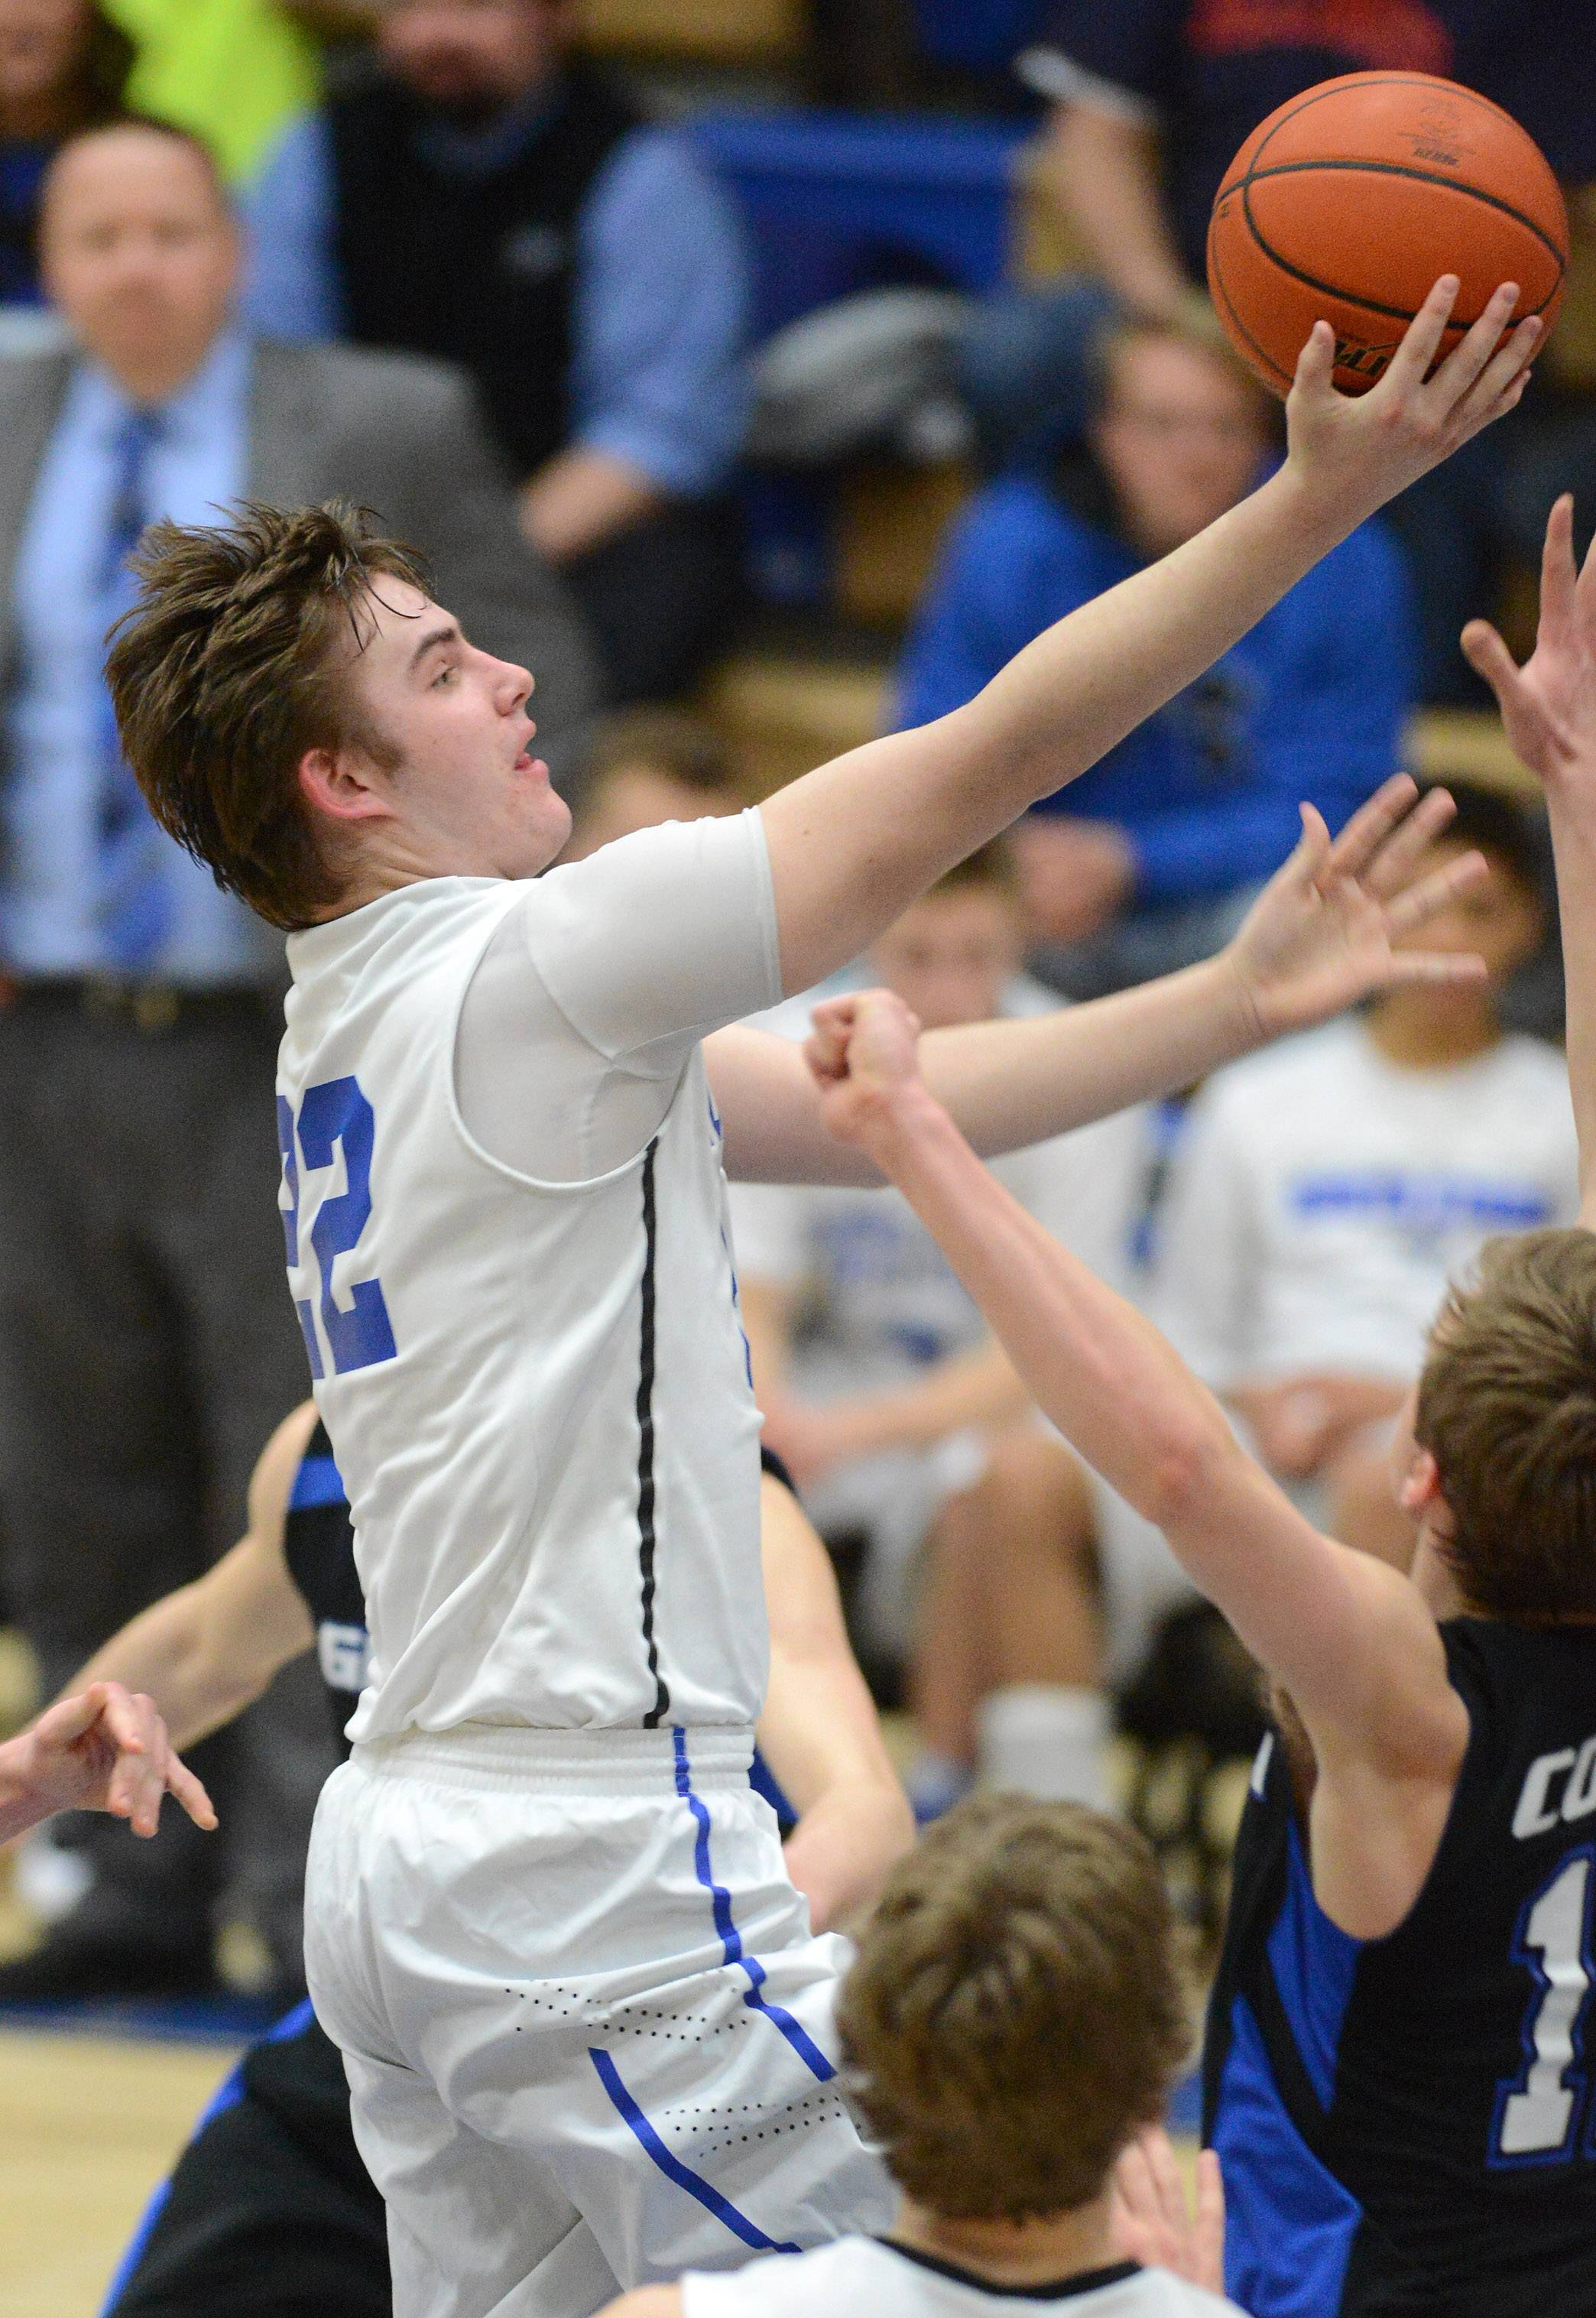 St. Charles North's Jack Callaghan drives and scores against Geneva.